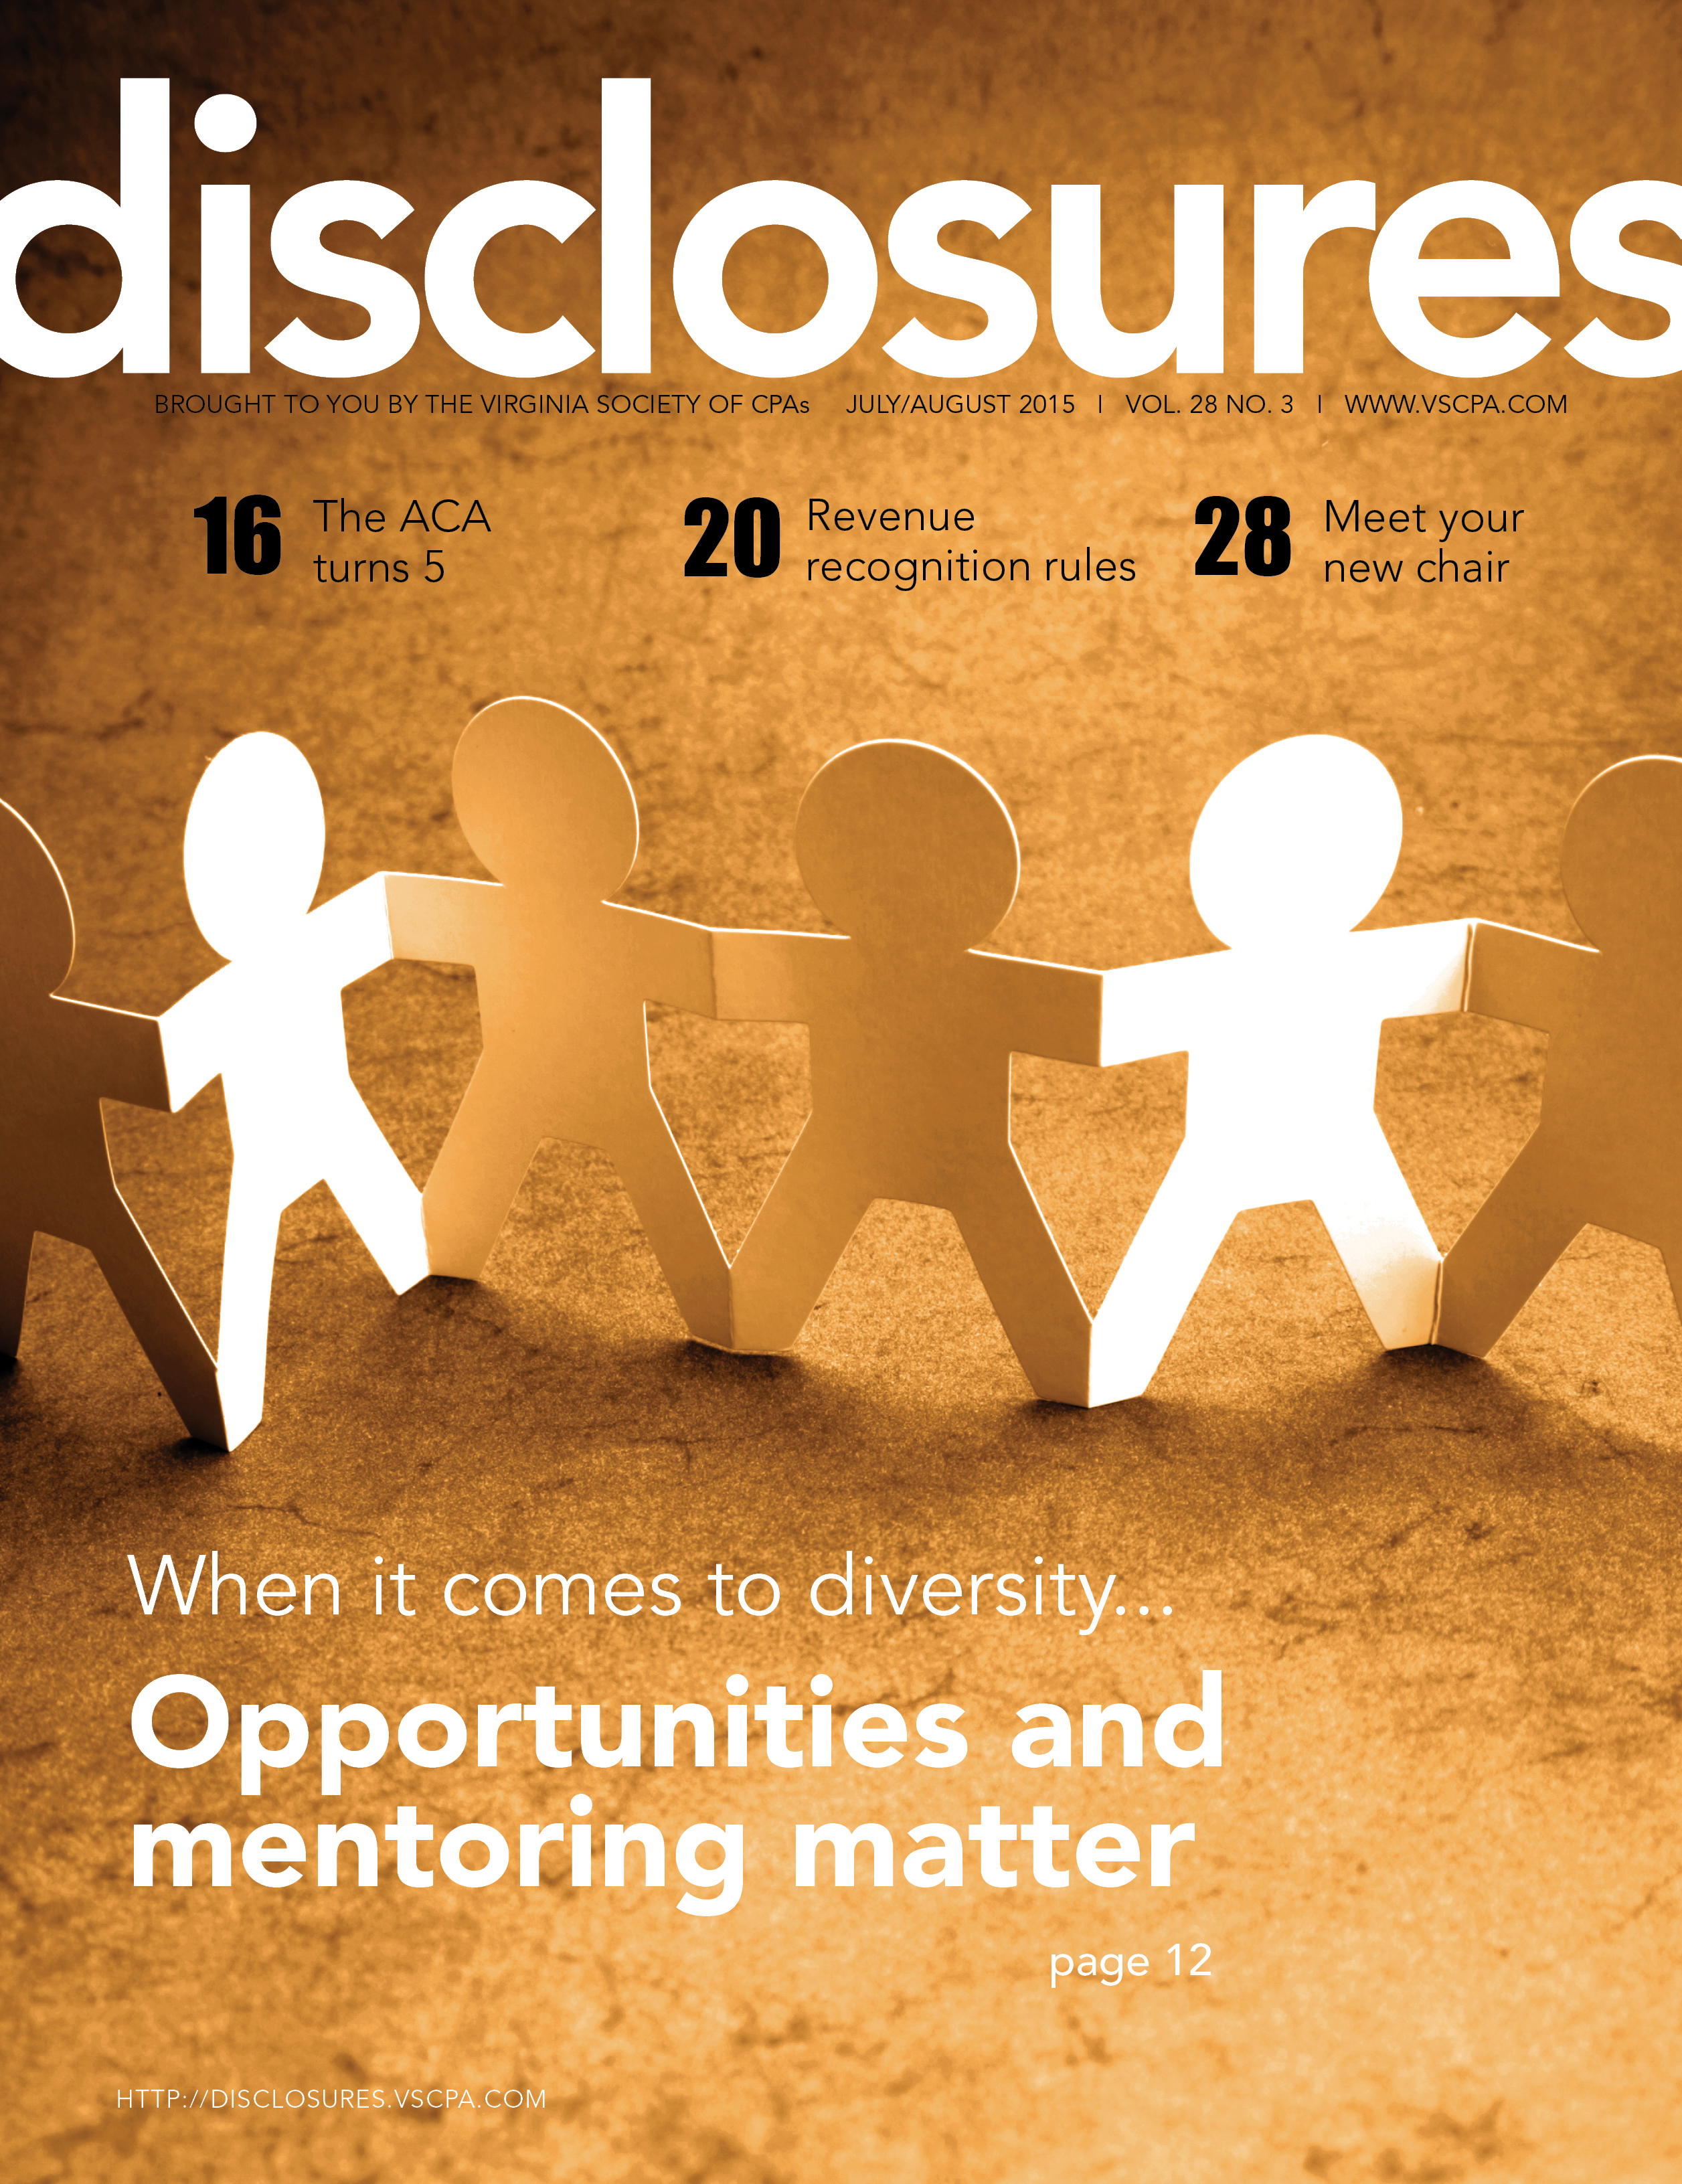 Cover of July/August 2015 issue of Disclosures